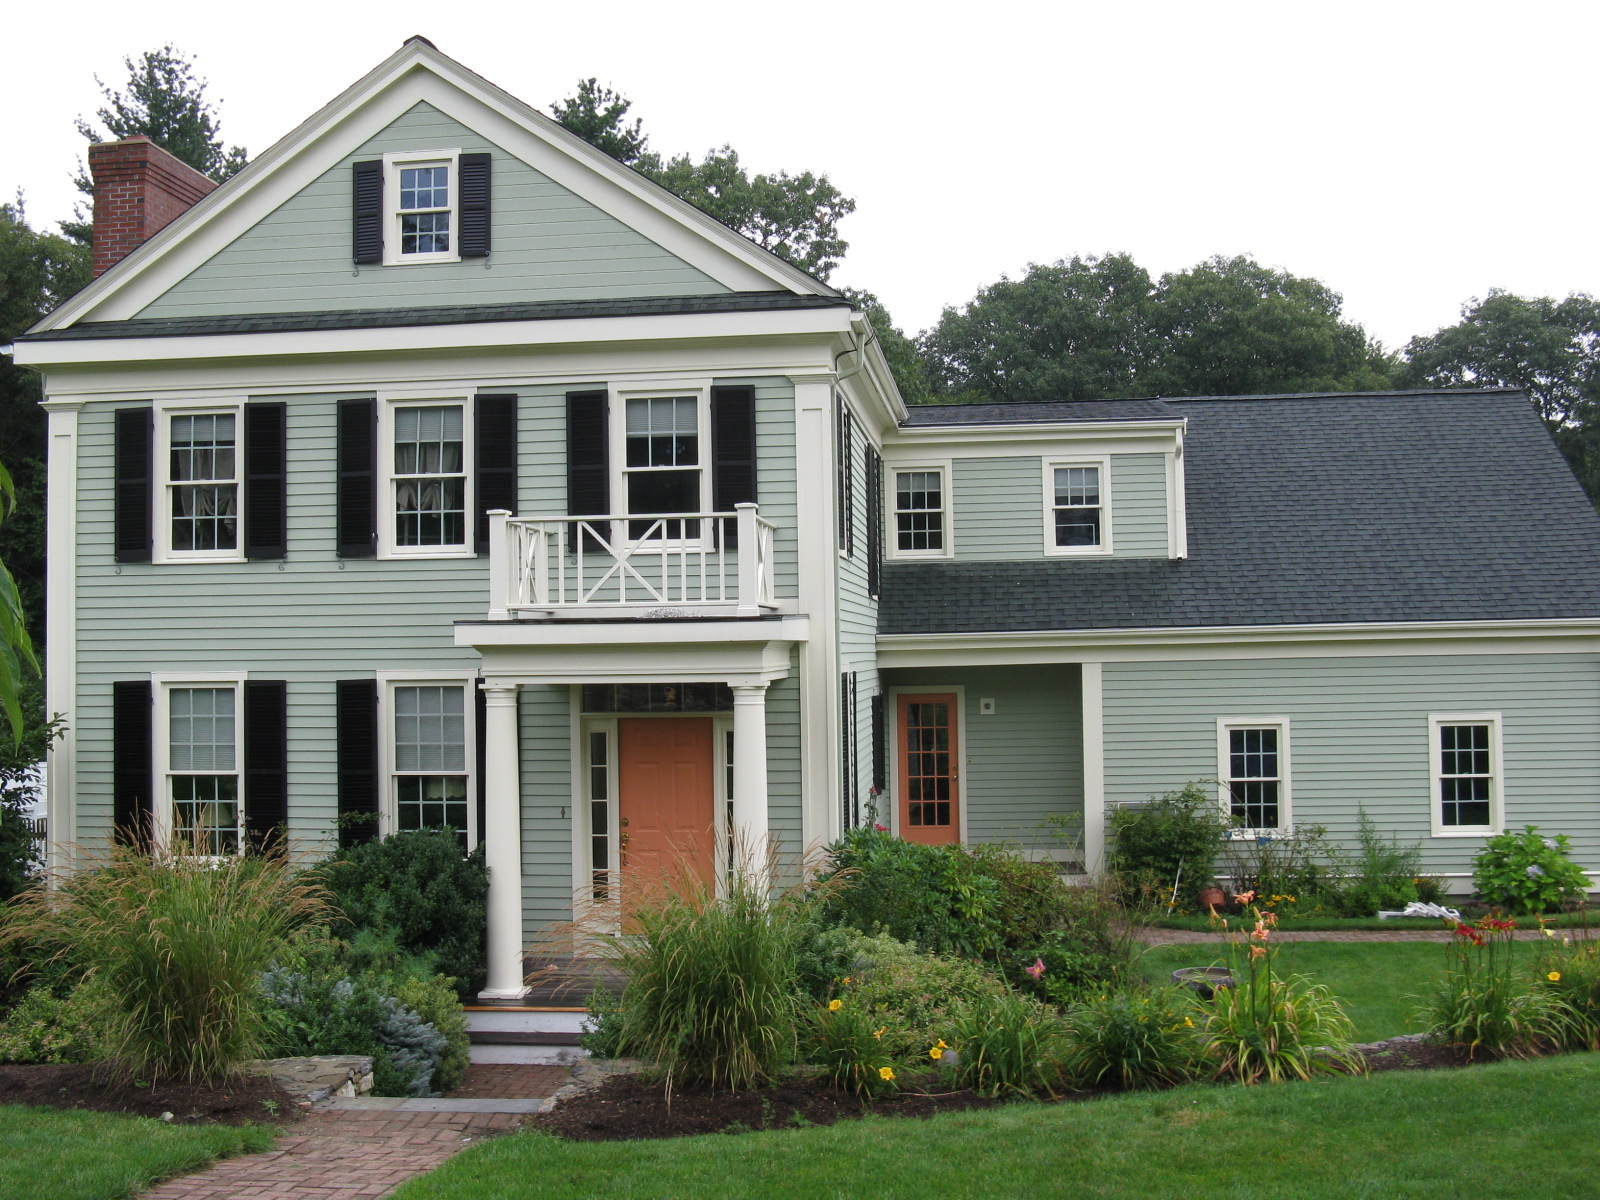 Sage Green House With White Trim furthermore Red And Grey Living Room Design besides Brick House With Green Shutters besides Green Ash likewise Dunn Edwards White Exterior Images. on olive green house with white trim